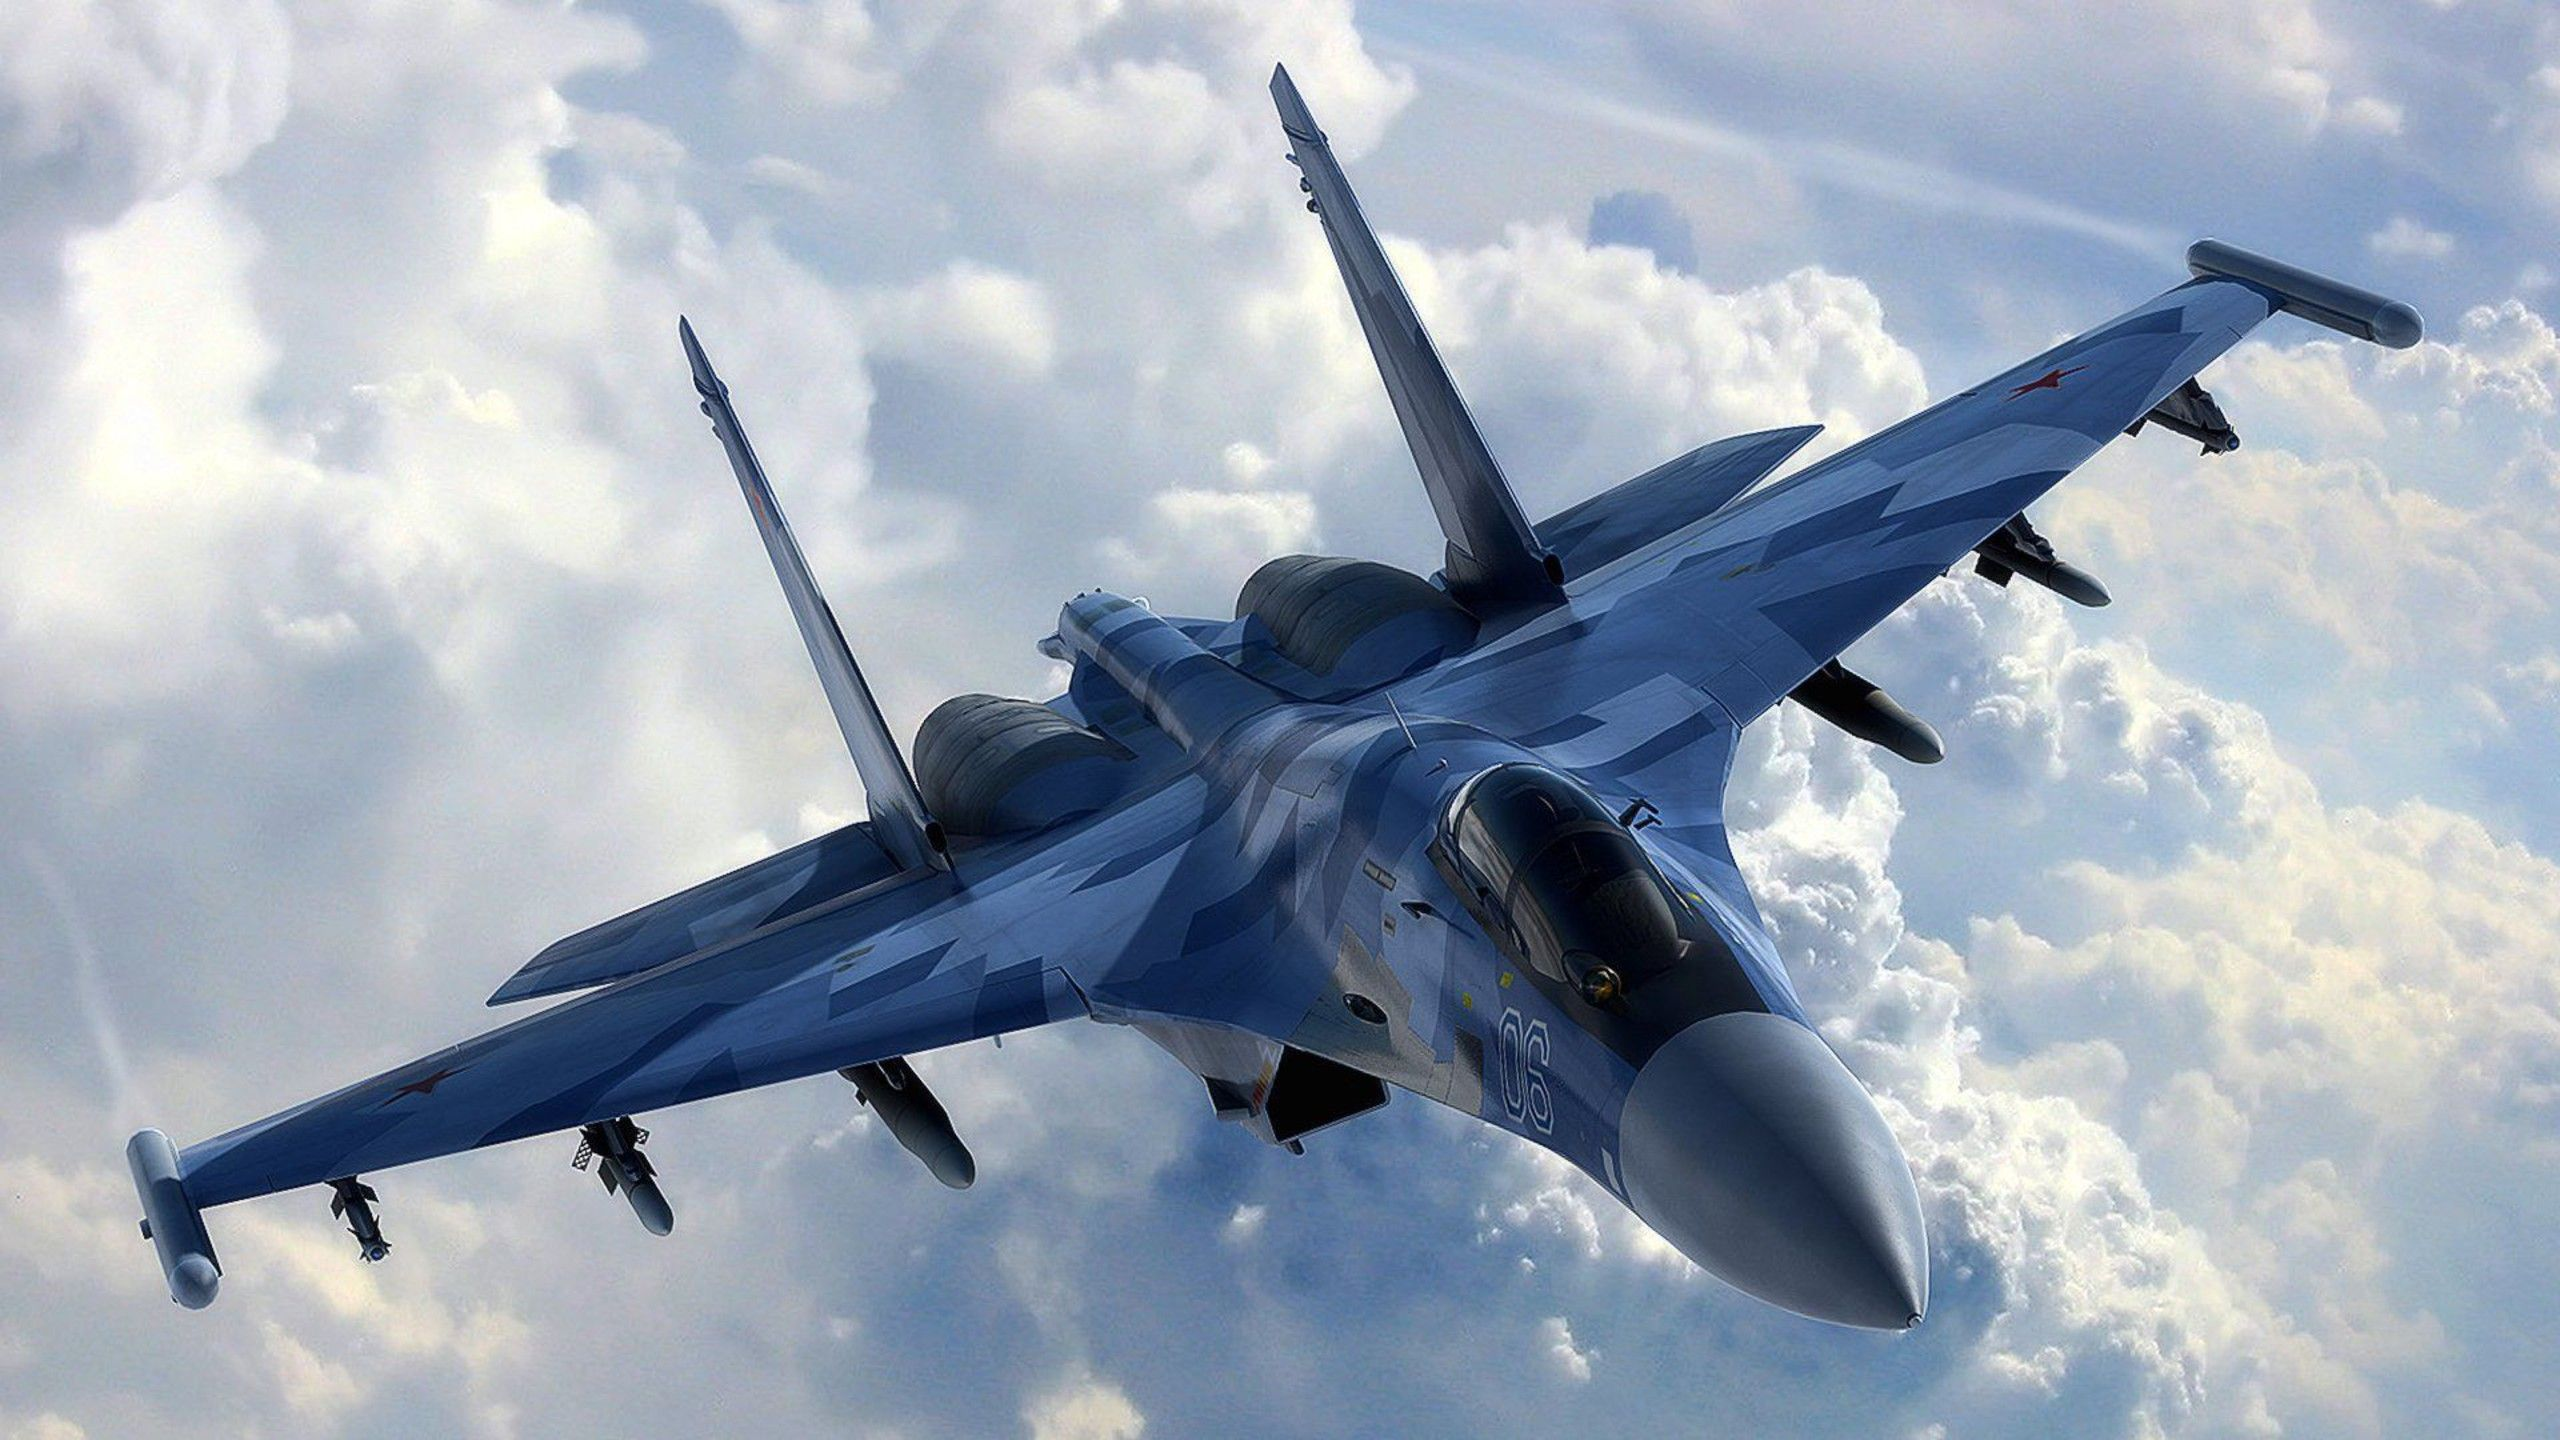 Sukhoi Su 57 Fighter Planes Fighter Planes Jets Fighter Jets Good aircrafts military hd wallpaper